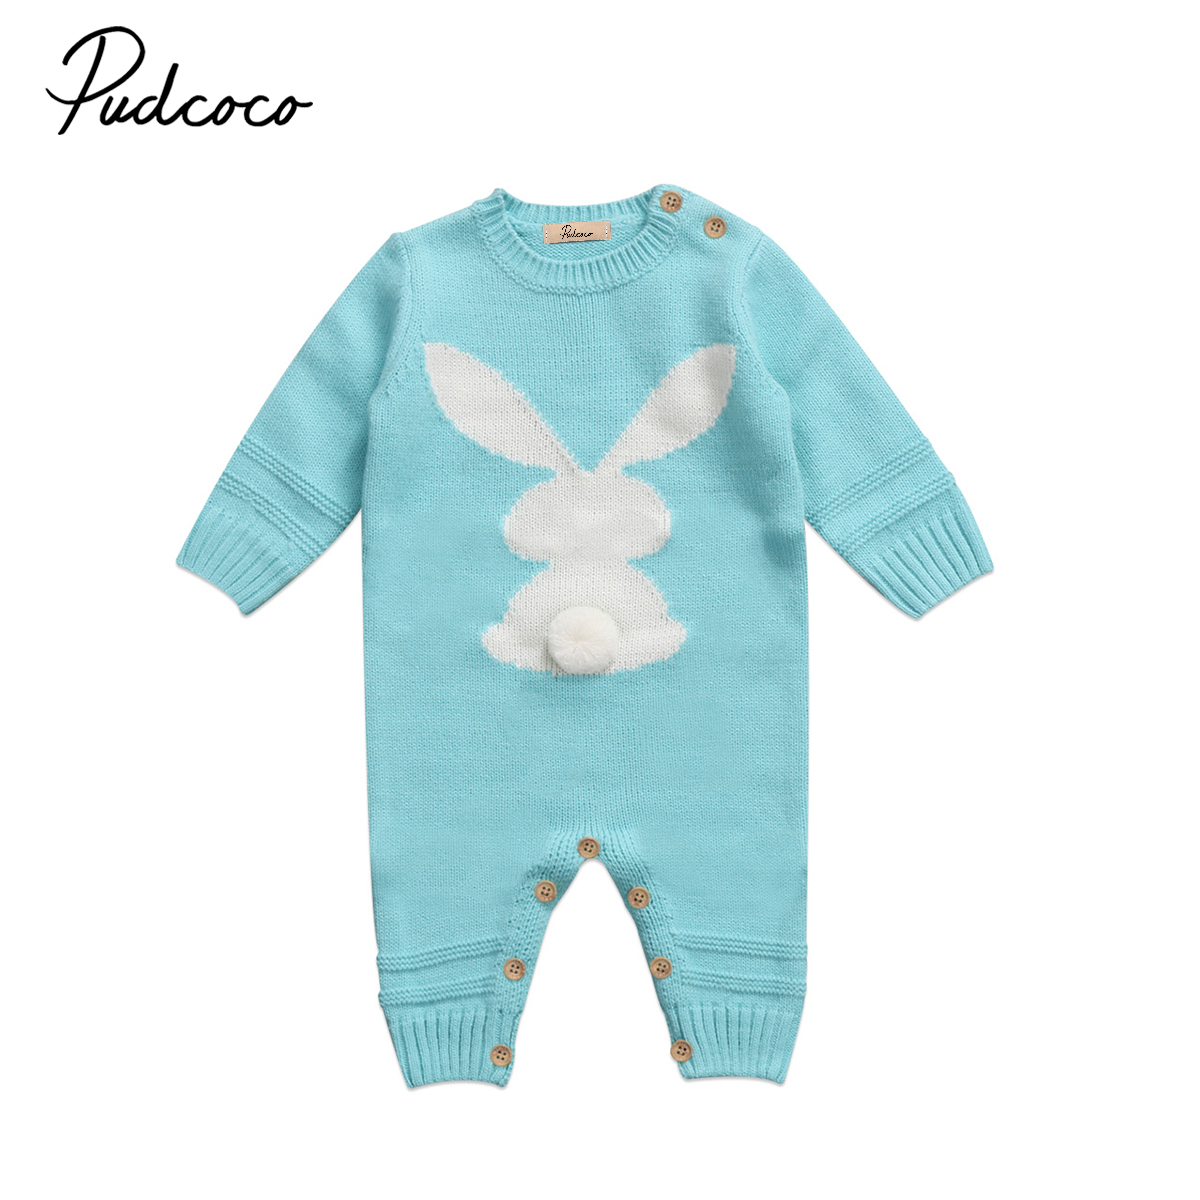 2017 Brand New Newborn Toddler Infant Baby Boy Girl Cartoon Rabbit Warm Knitting Romper Jumpsuit Outfit Casual Clothes newborn infant baby romper cute rabbit new born jumpsuit clothing girl boy baby bear clothes toddler romper costumes